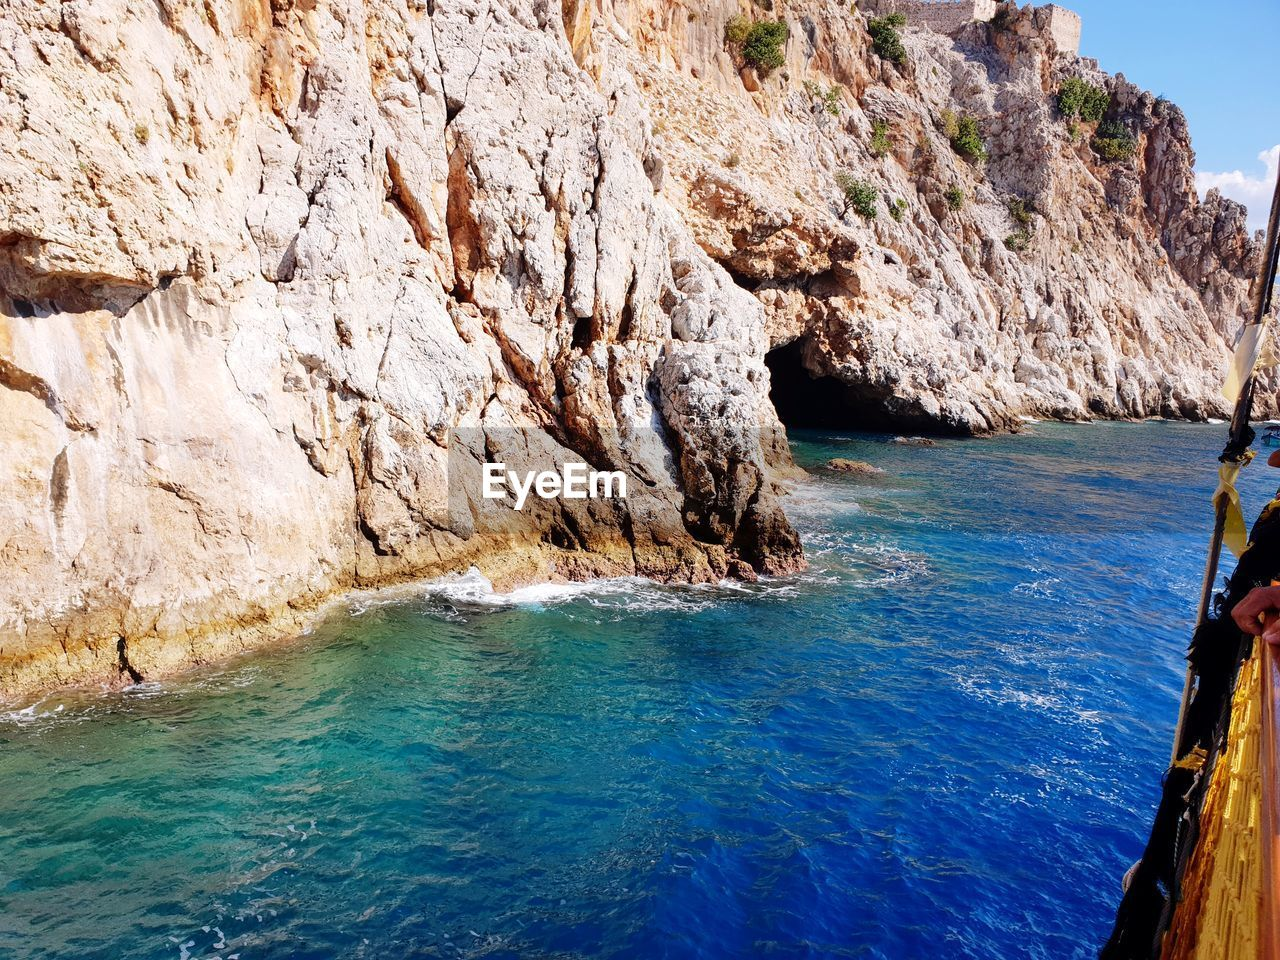 water, sea, rock, nature, beauty in nature, blue, rock - object, solid, no people, scenics - nature, land, tranquility, tranquil scene, rock formation, day, outdoors, cliff, idyllic, waterfront, formation, turquoise colored, eroded, rocky coastline